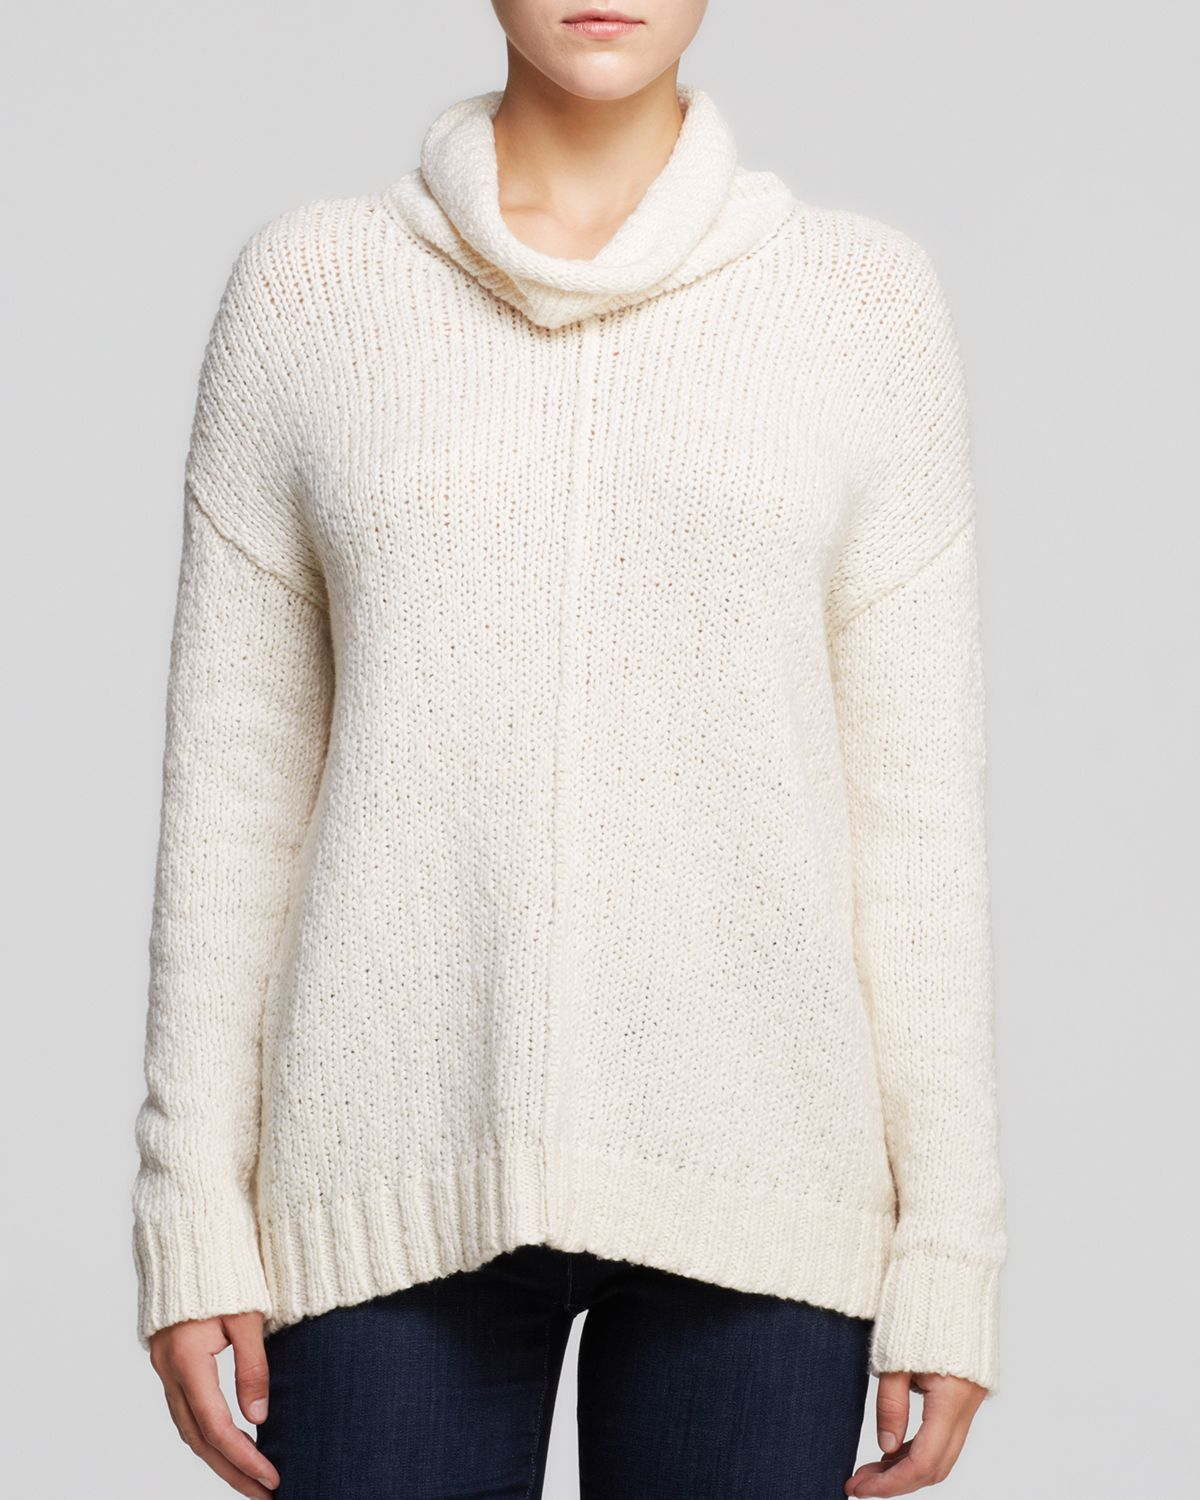 Eileen fisher Cotton Turtleneck Sweater in White | Lyst